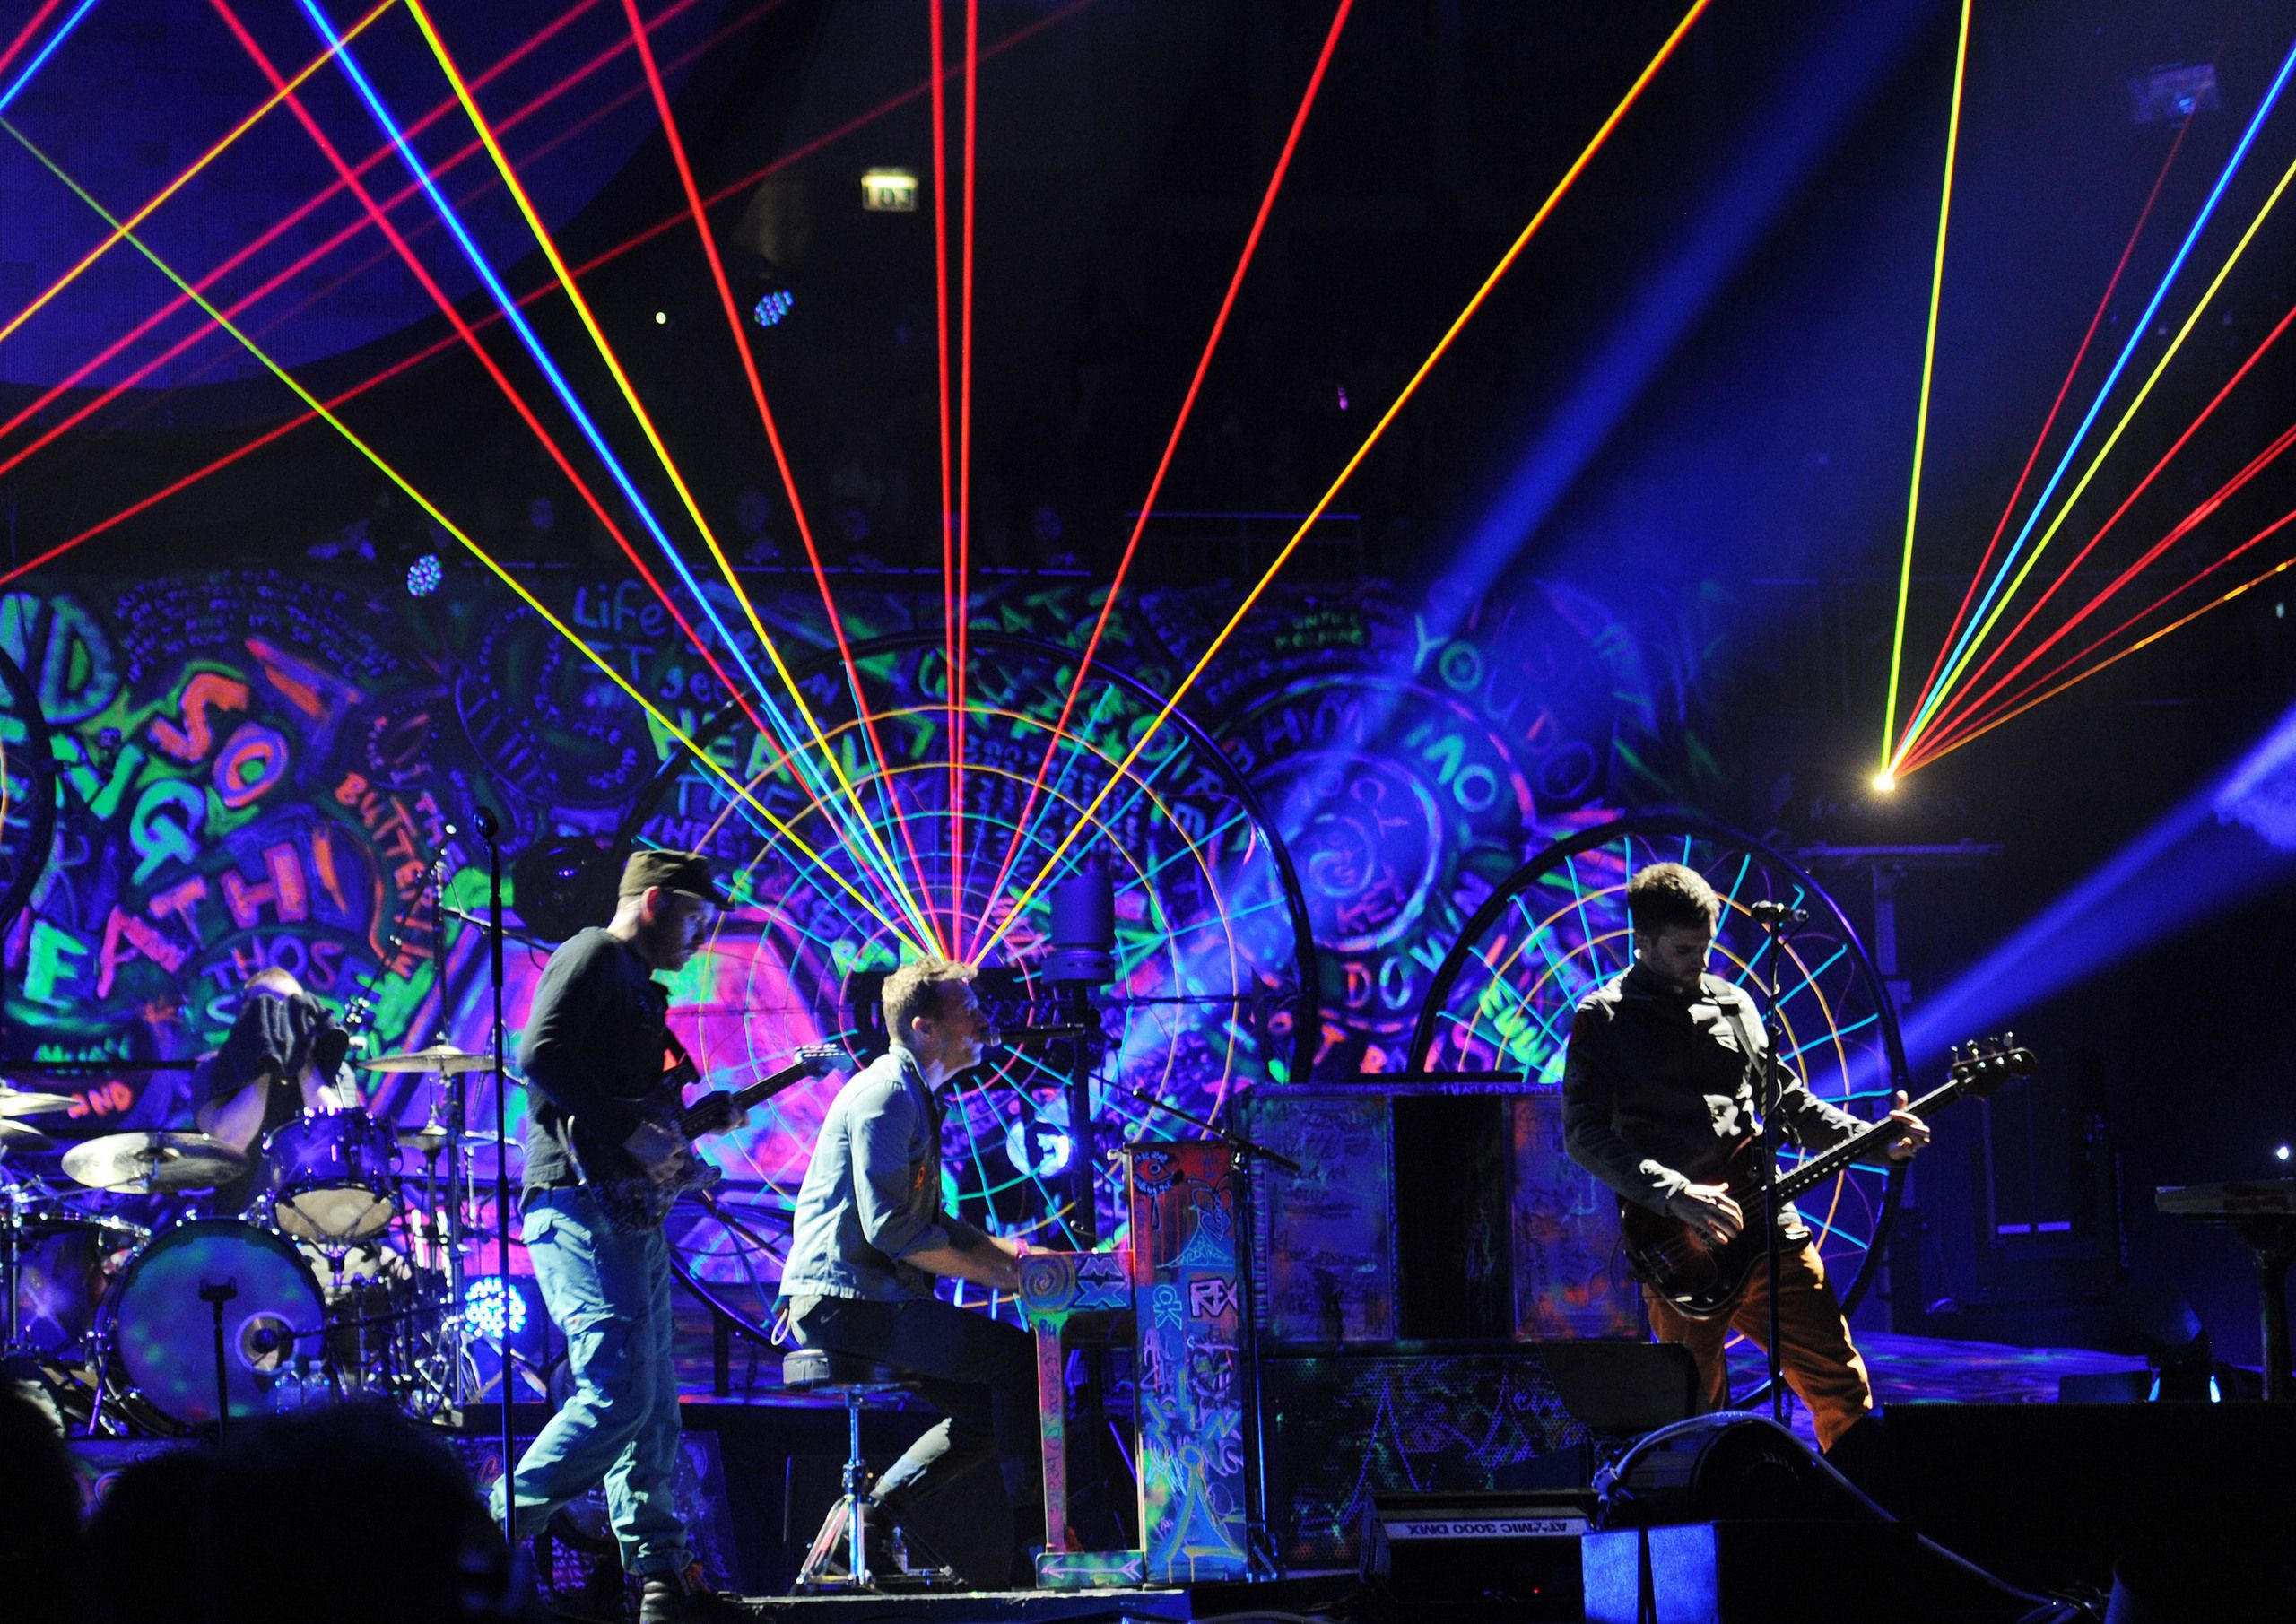 Concert review coldplay coldplay coldplay music and chris coldplay mylo xyloto voltagebd Choice Image